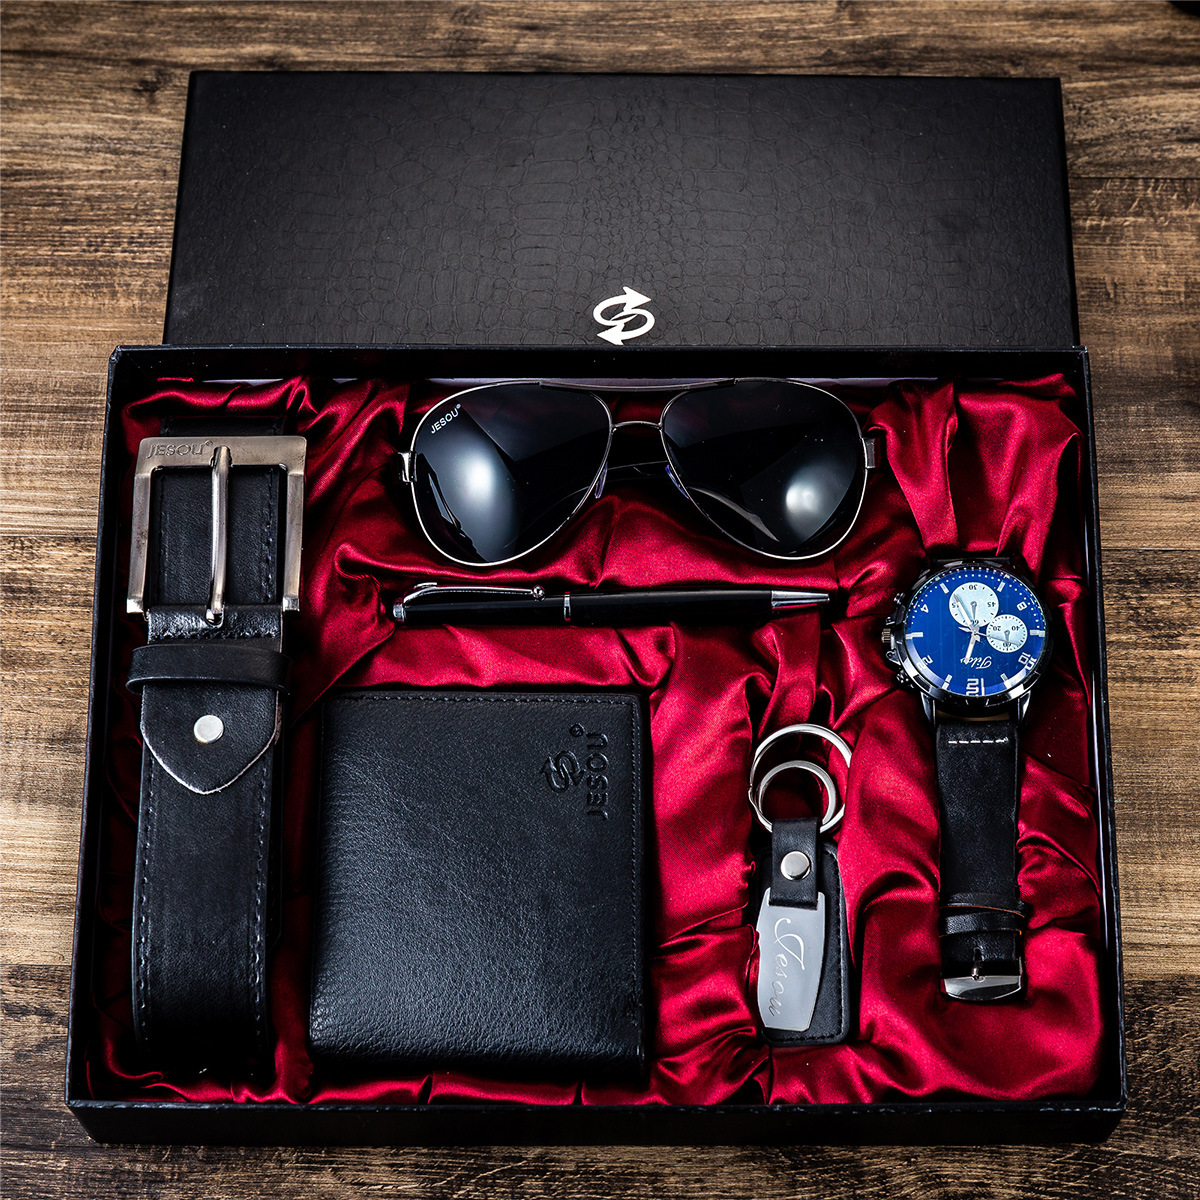 6pes/Set Men's Gift Set Beautifully Packaged Watch + Leather Belt Wallet Creative Minimalist Combination Set-6pes/Set